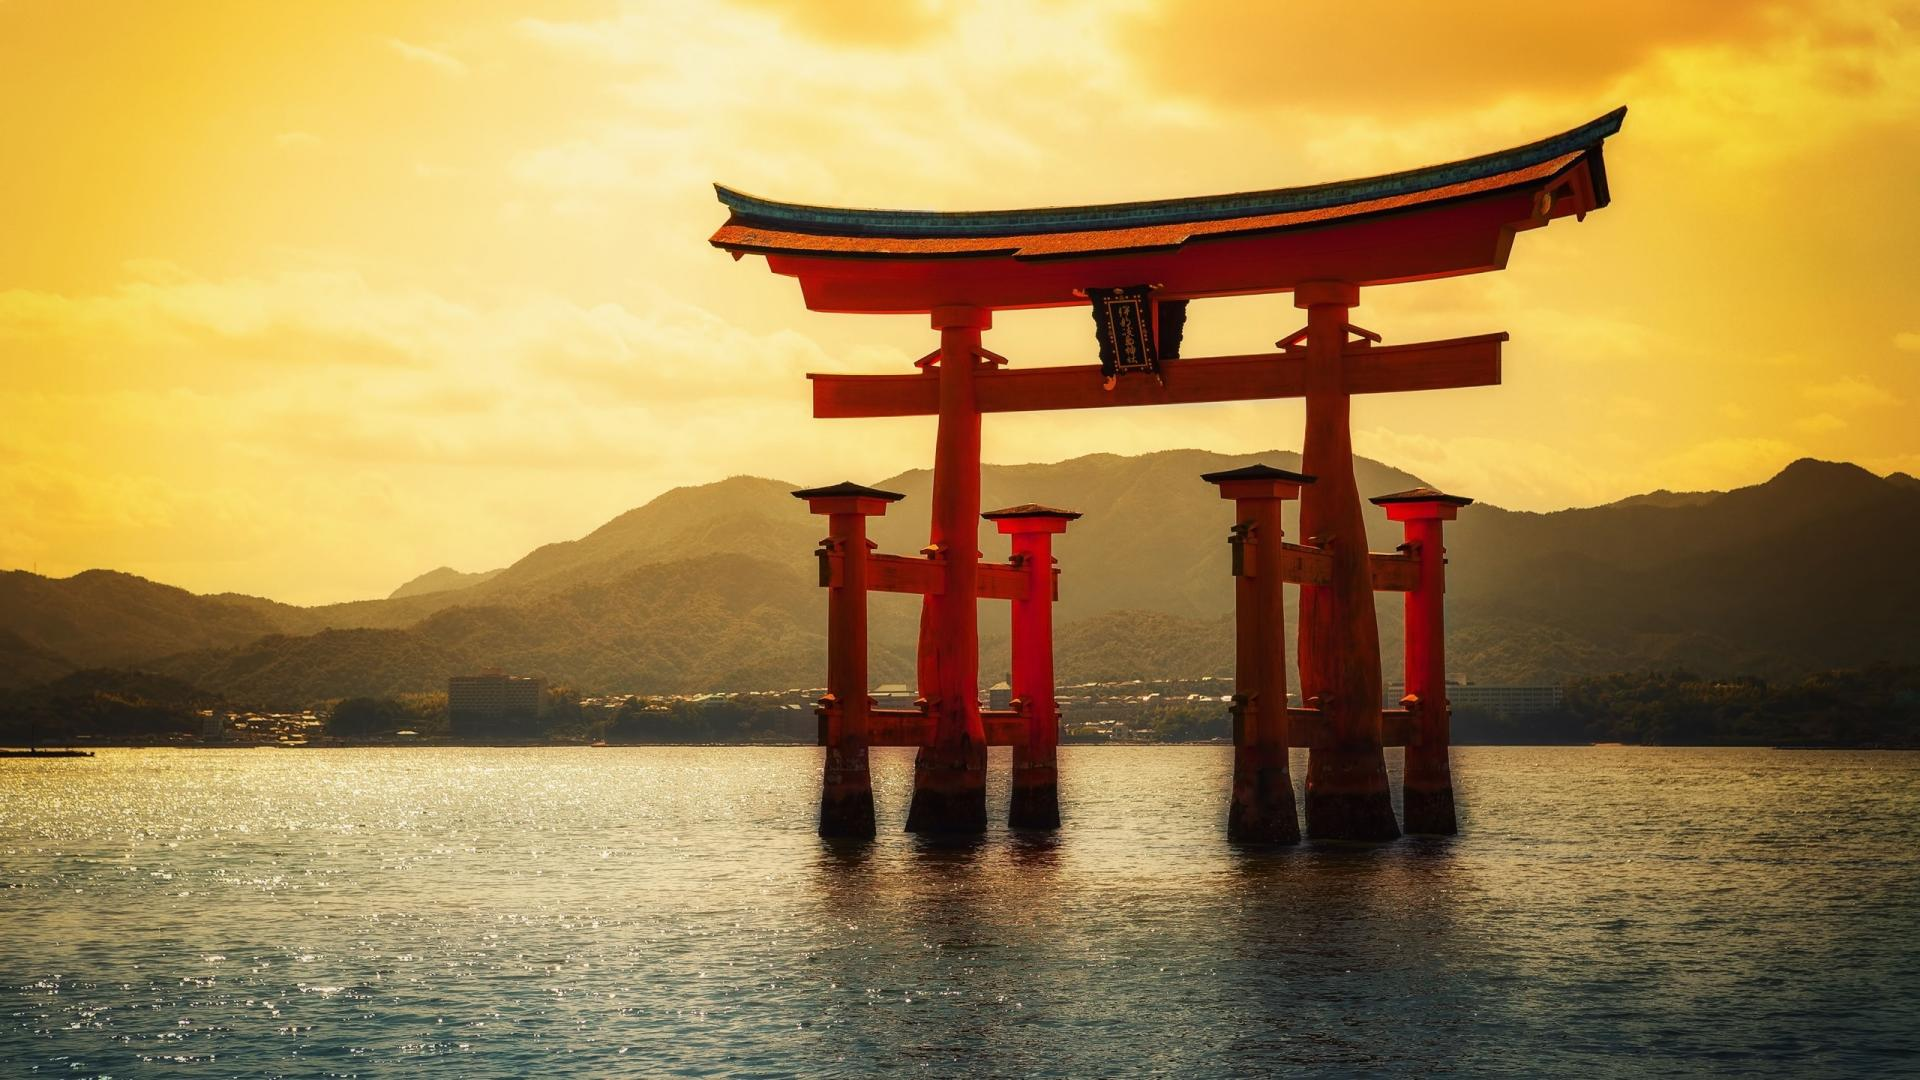 Introducing 3 Magnificent views of Japan